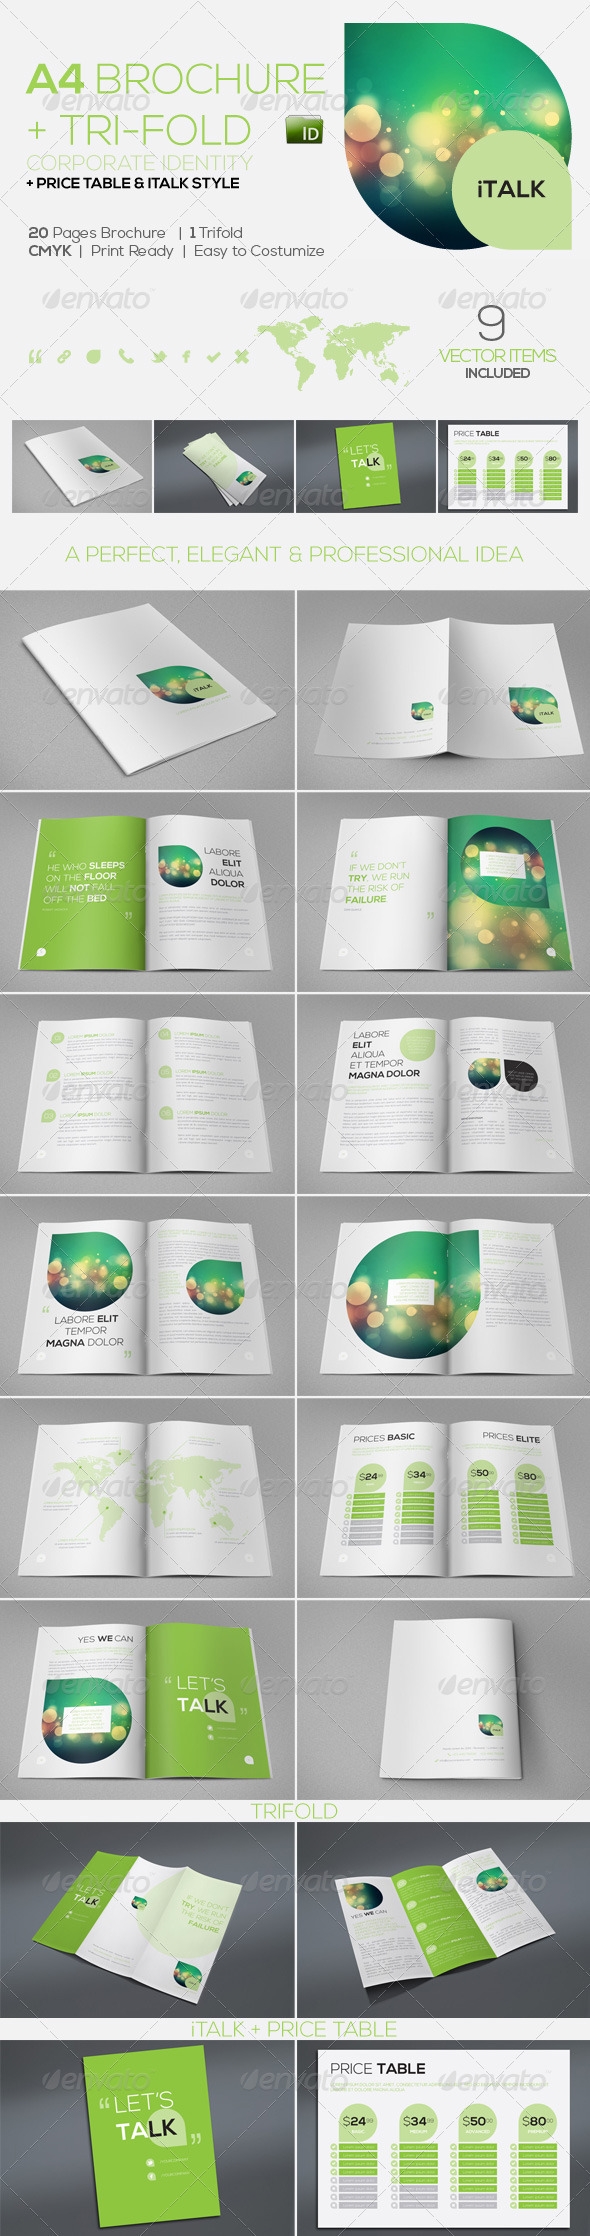 iTalk Elegant Corporate Identity | Brochure +++ - Corporate Brochures